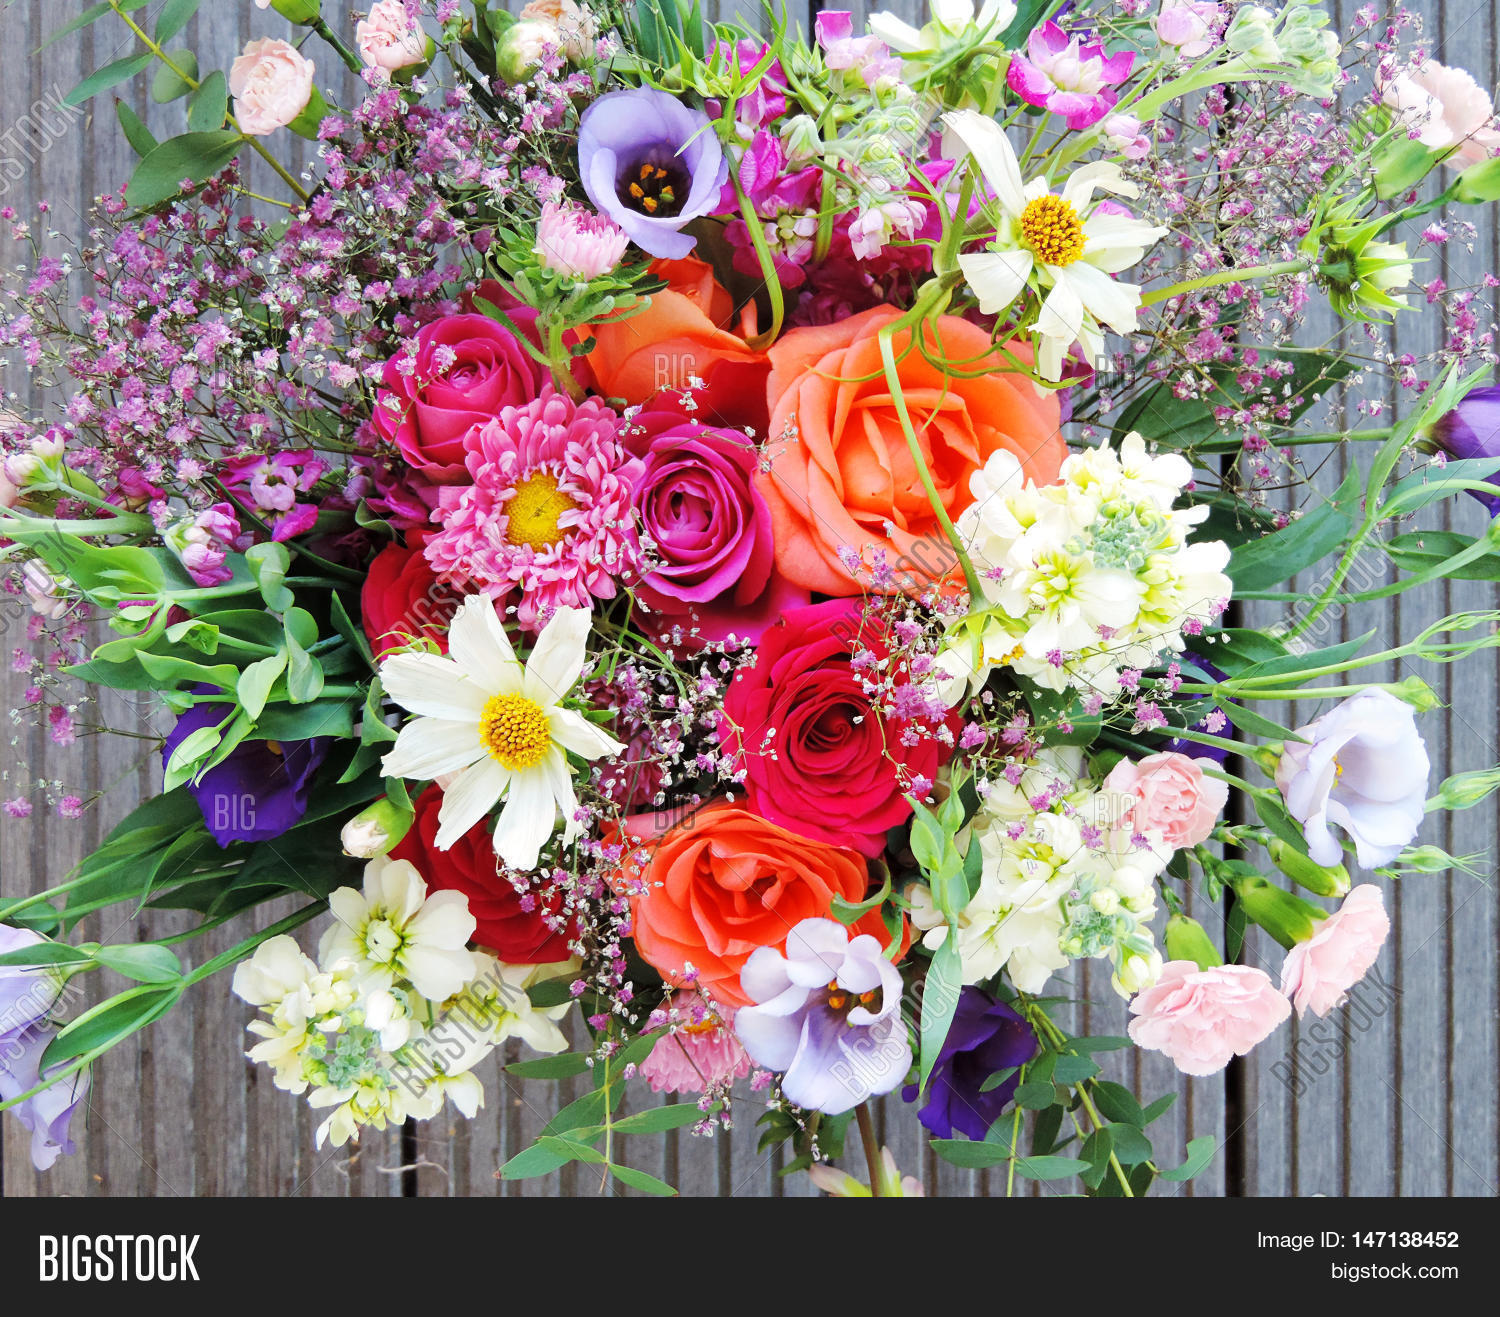 Multicolored Spring Image & Photo (Free Trial) | Bigstock